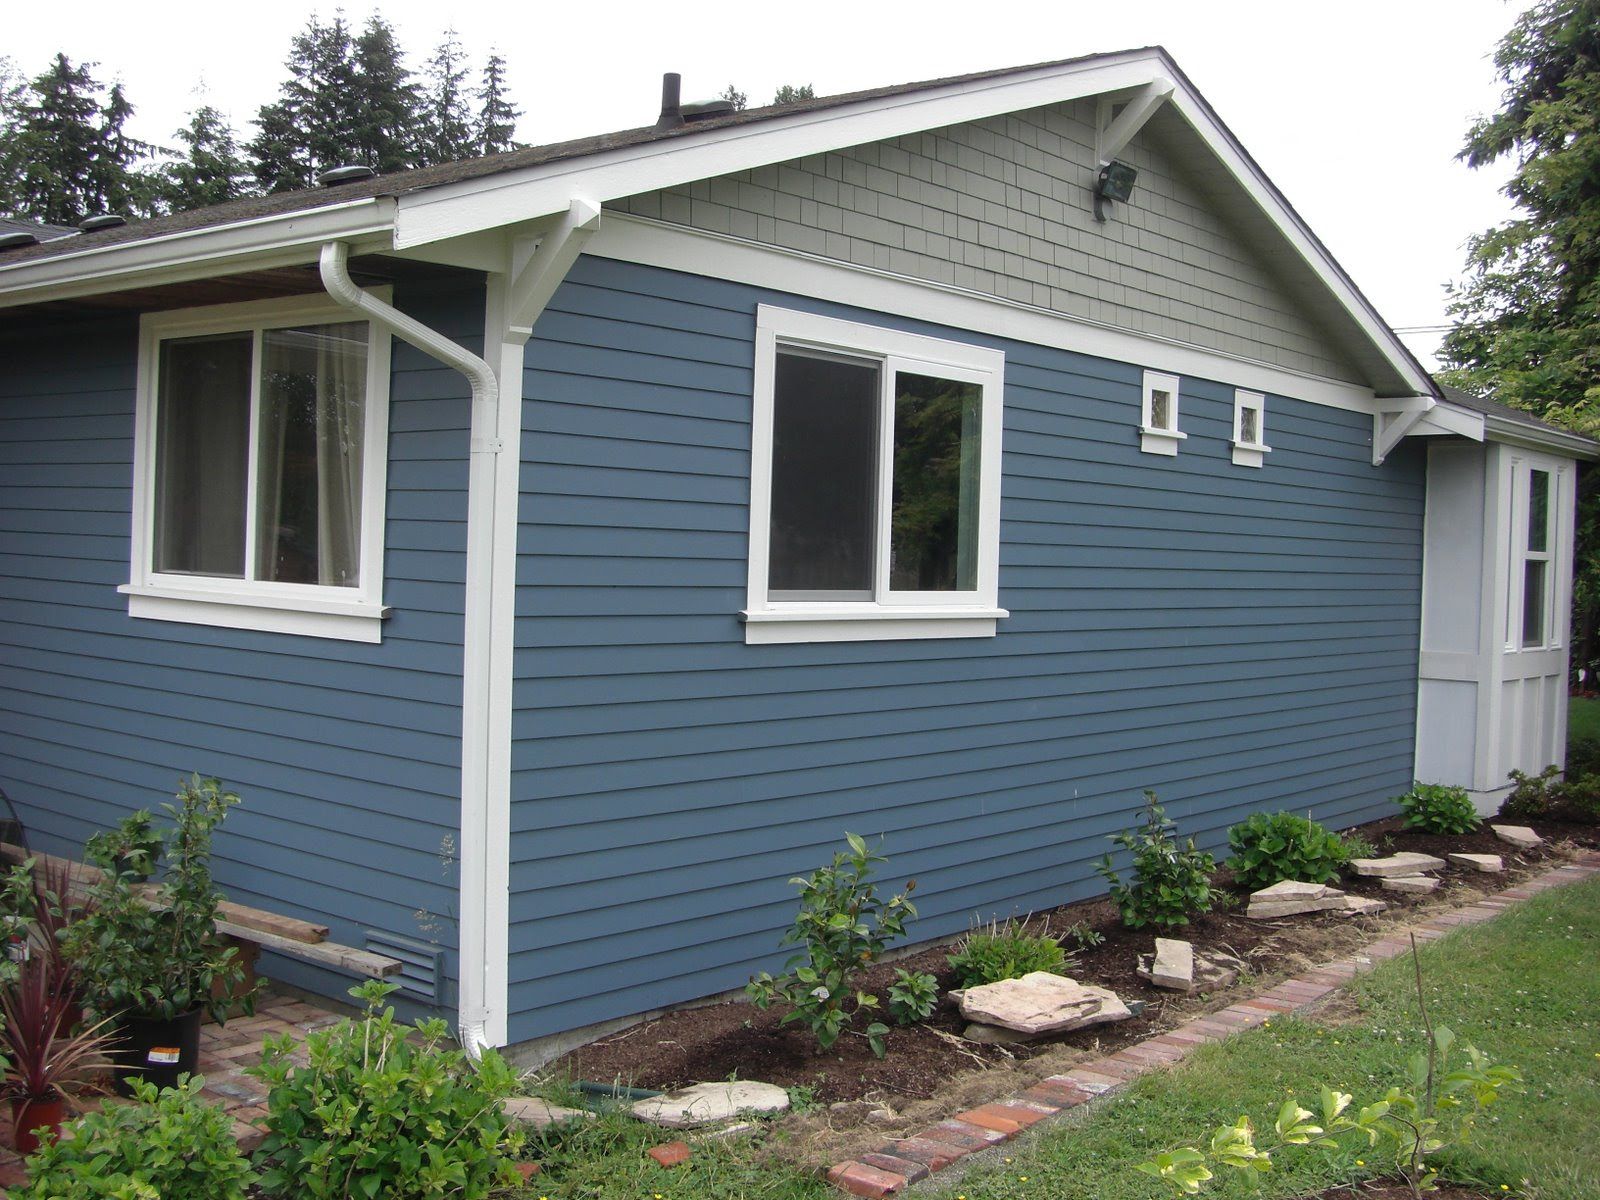 House with Siding